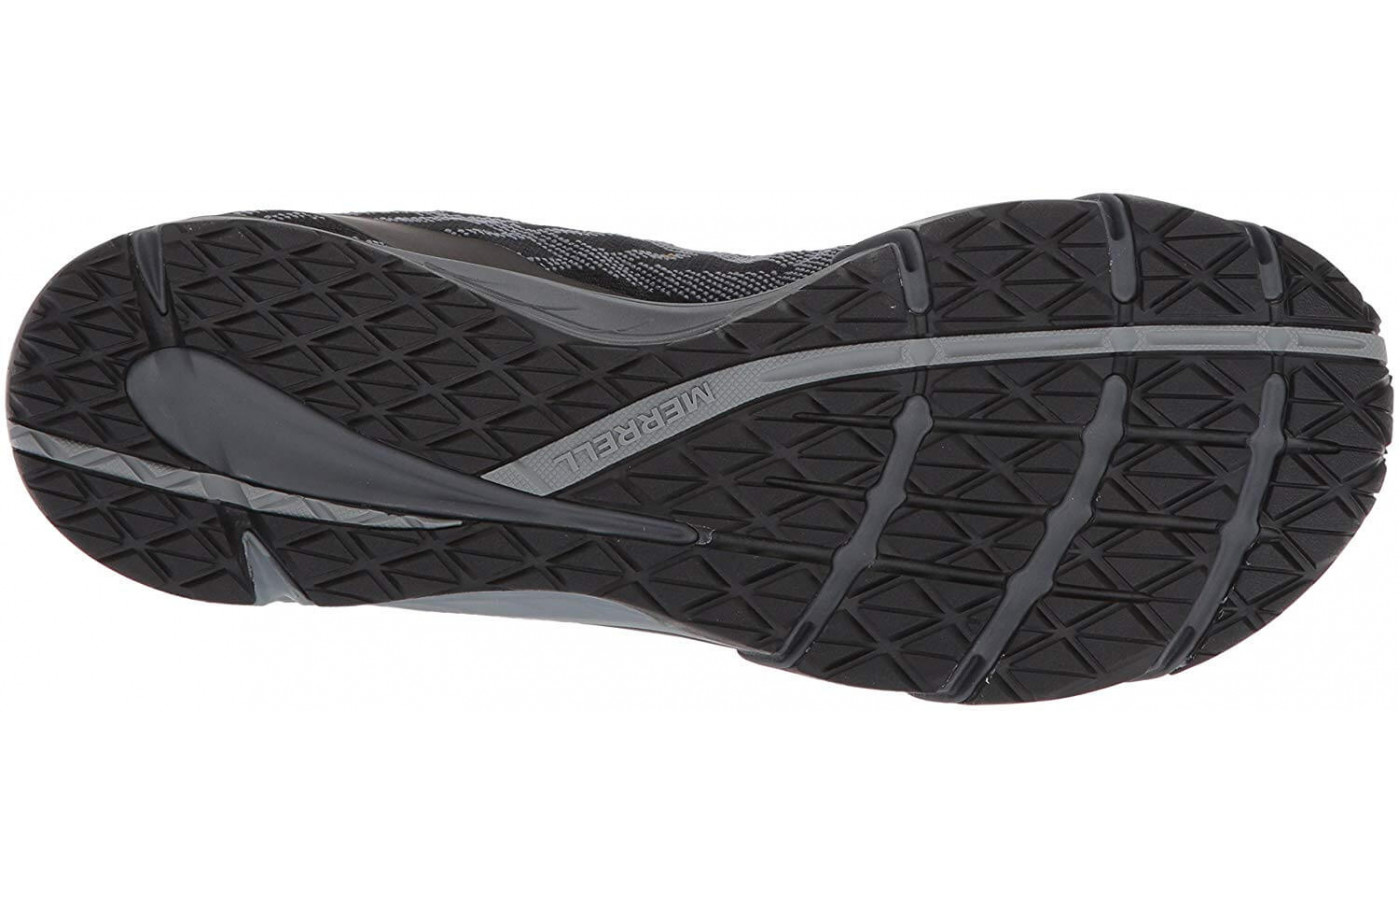 Merrell Bare Access Flex E-Mesh bottom